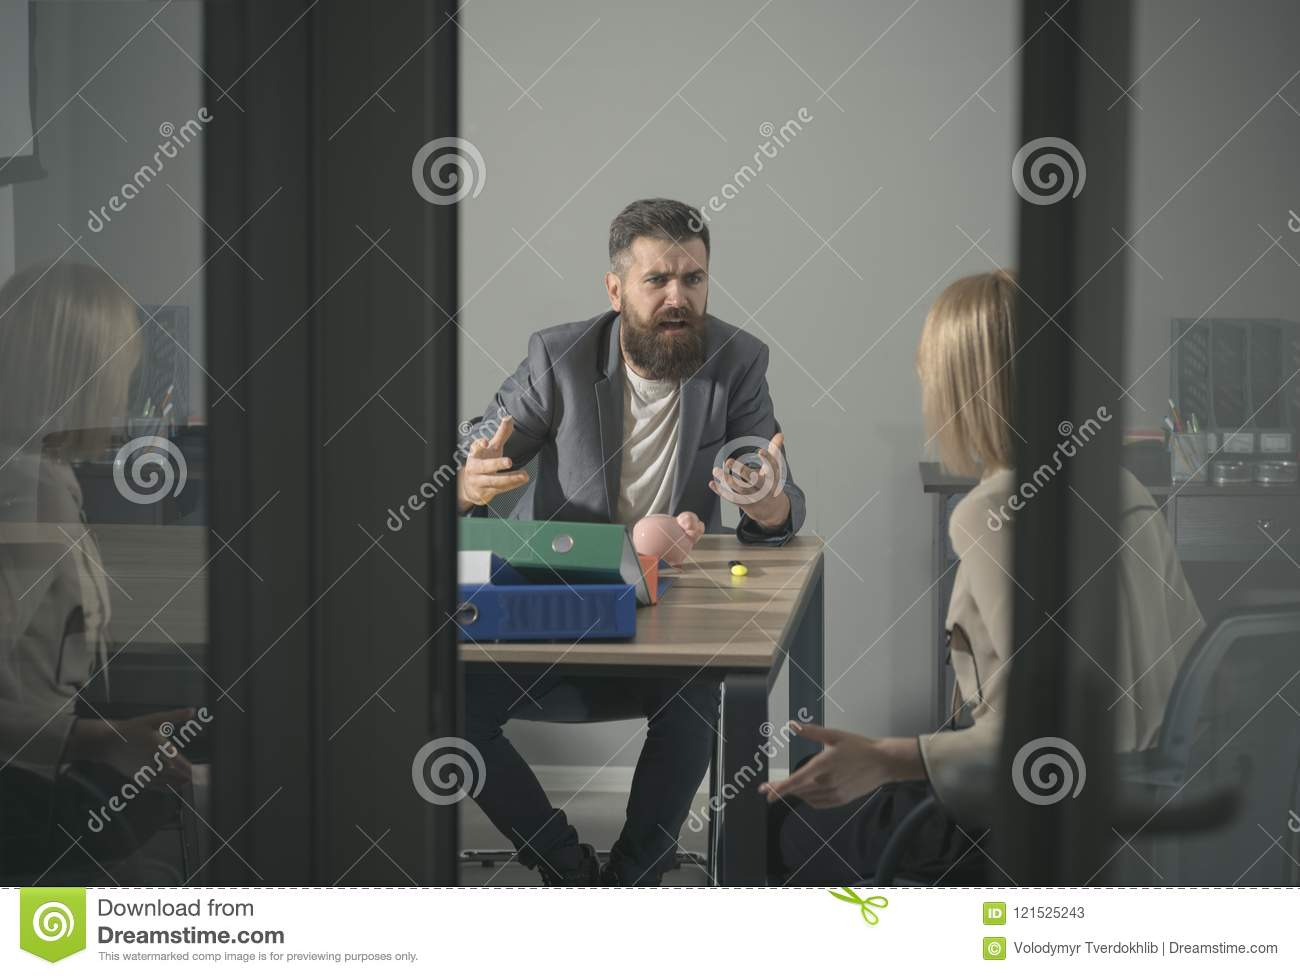 Angry boss shout at accountant in office. Bearded man and woman discuss company budget. Businessman blame financier in